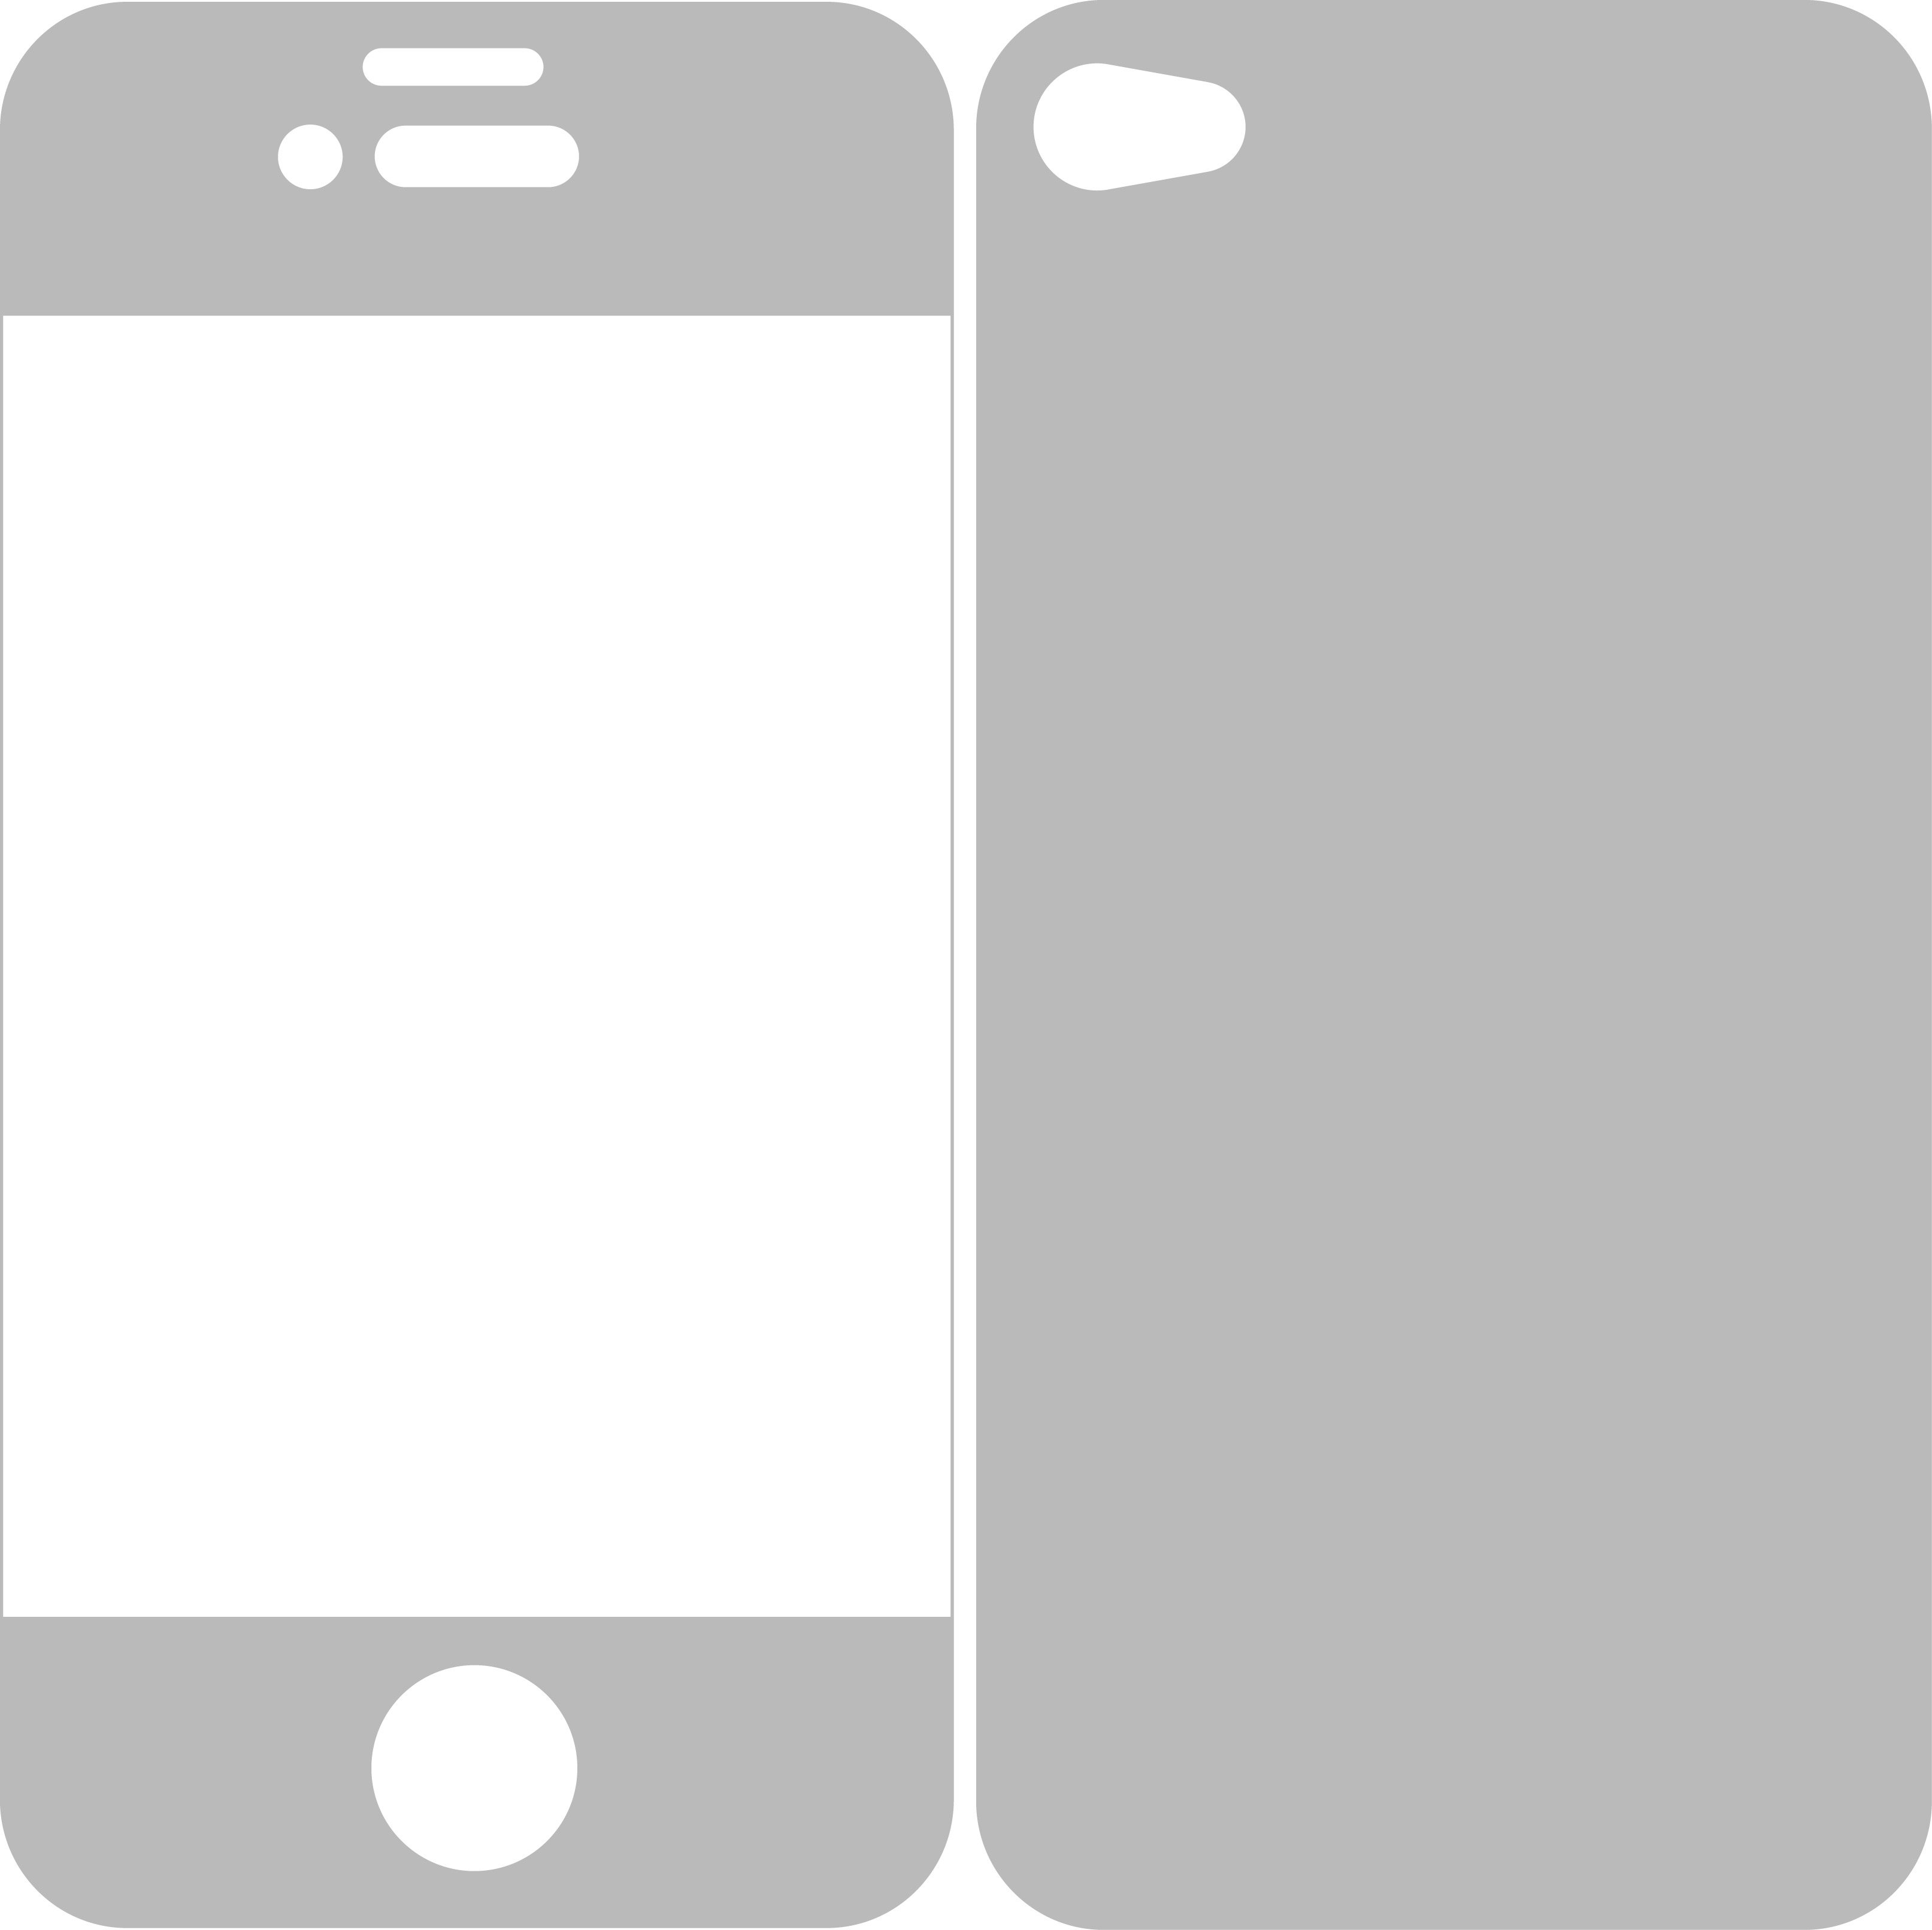 Iphone 6 clipart dimensions banner freeuse library Iphone 4 clipart dimensions - ClipartFox banner freeuse library